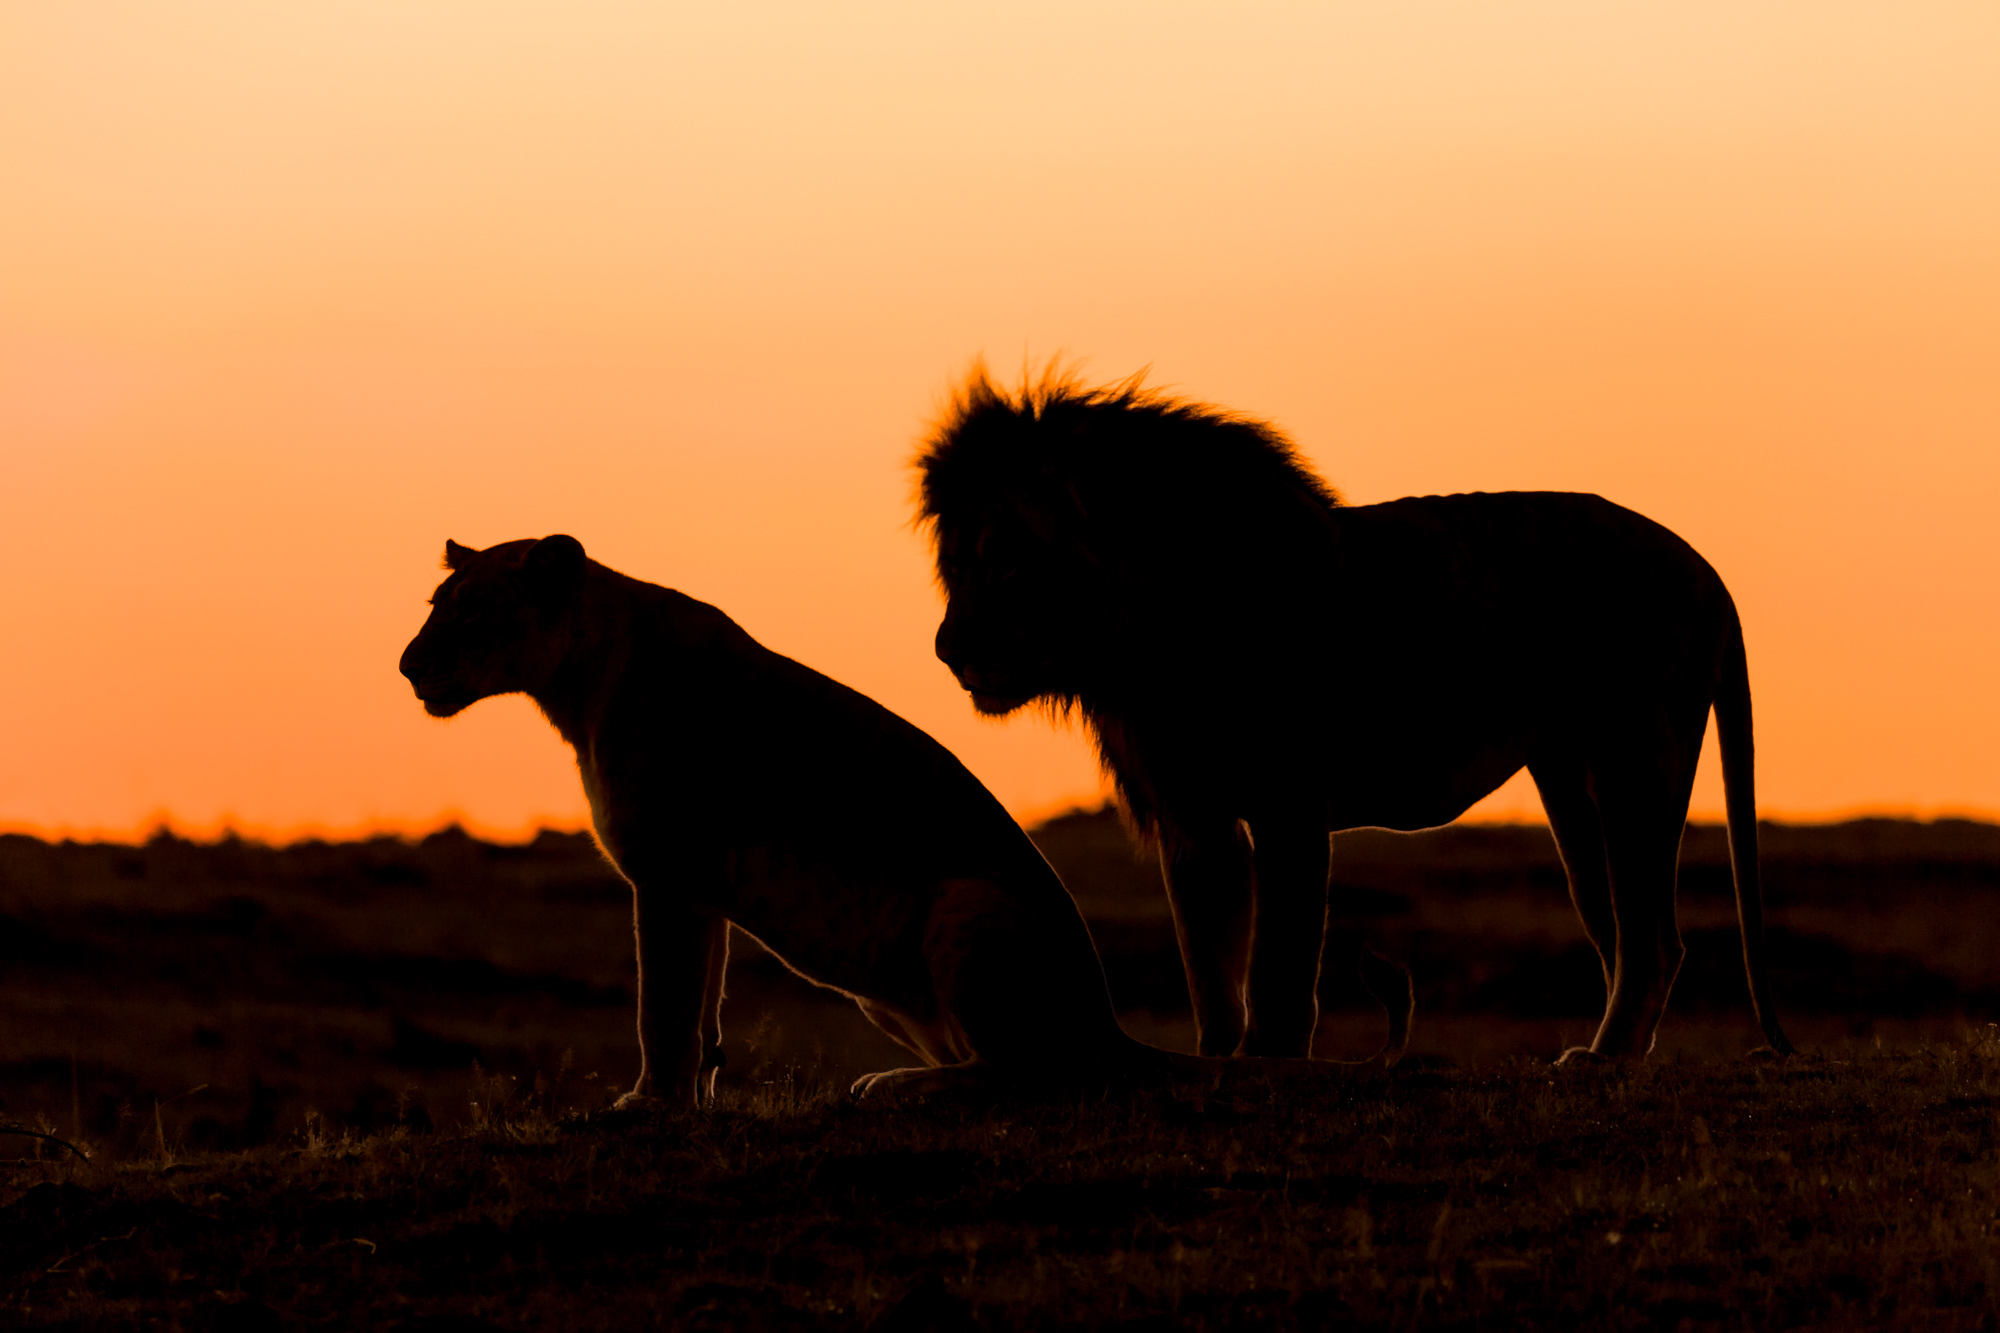 A par of lions photographed in the early light of dawn.